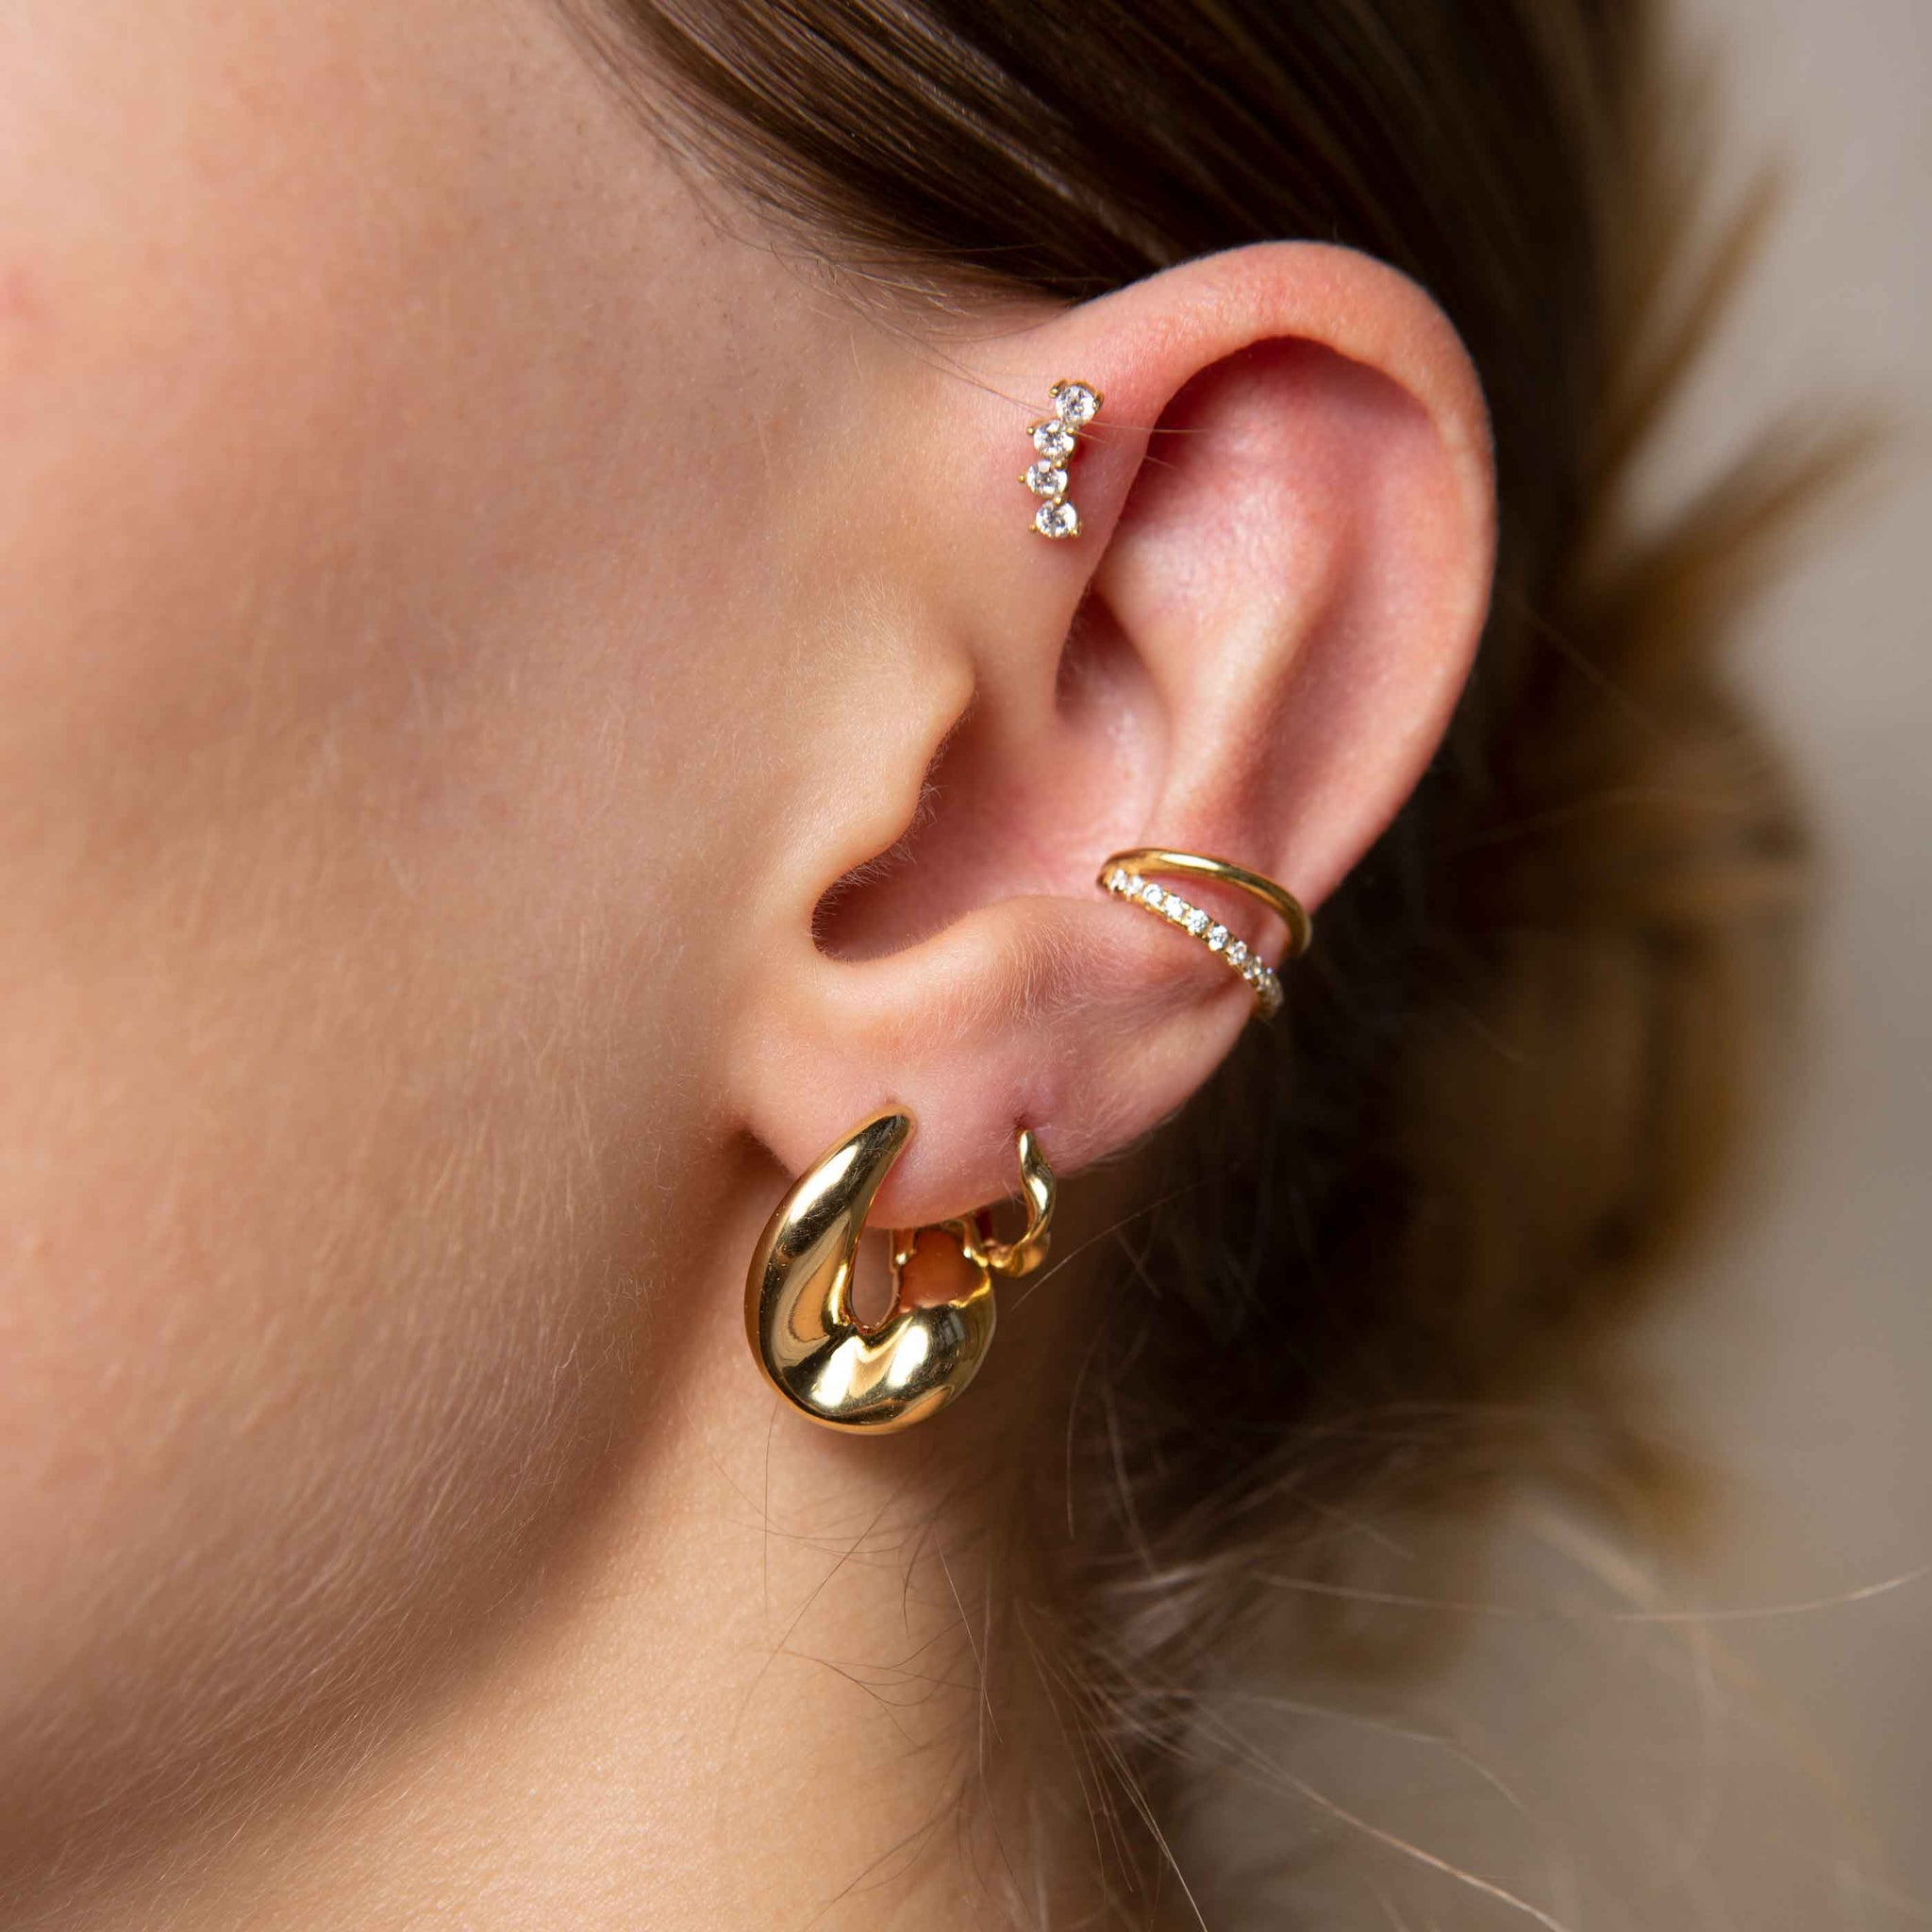 Elemental Huggies in Gold worn with curved crystal barbell